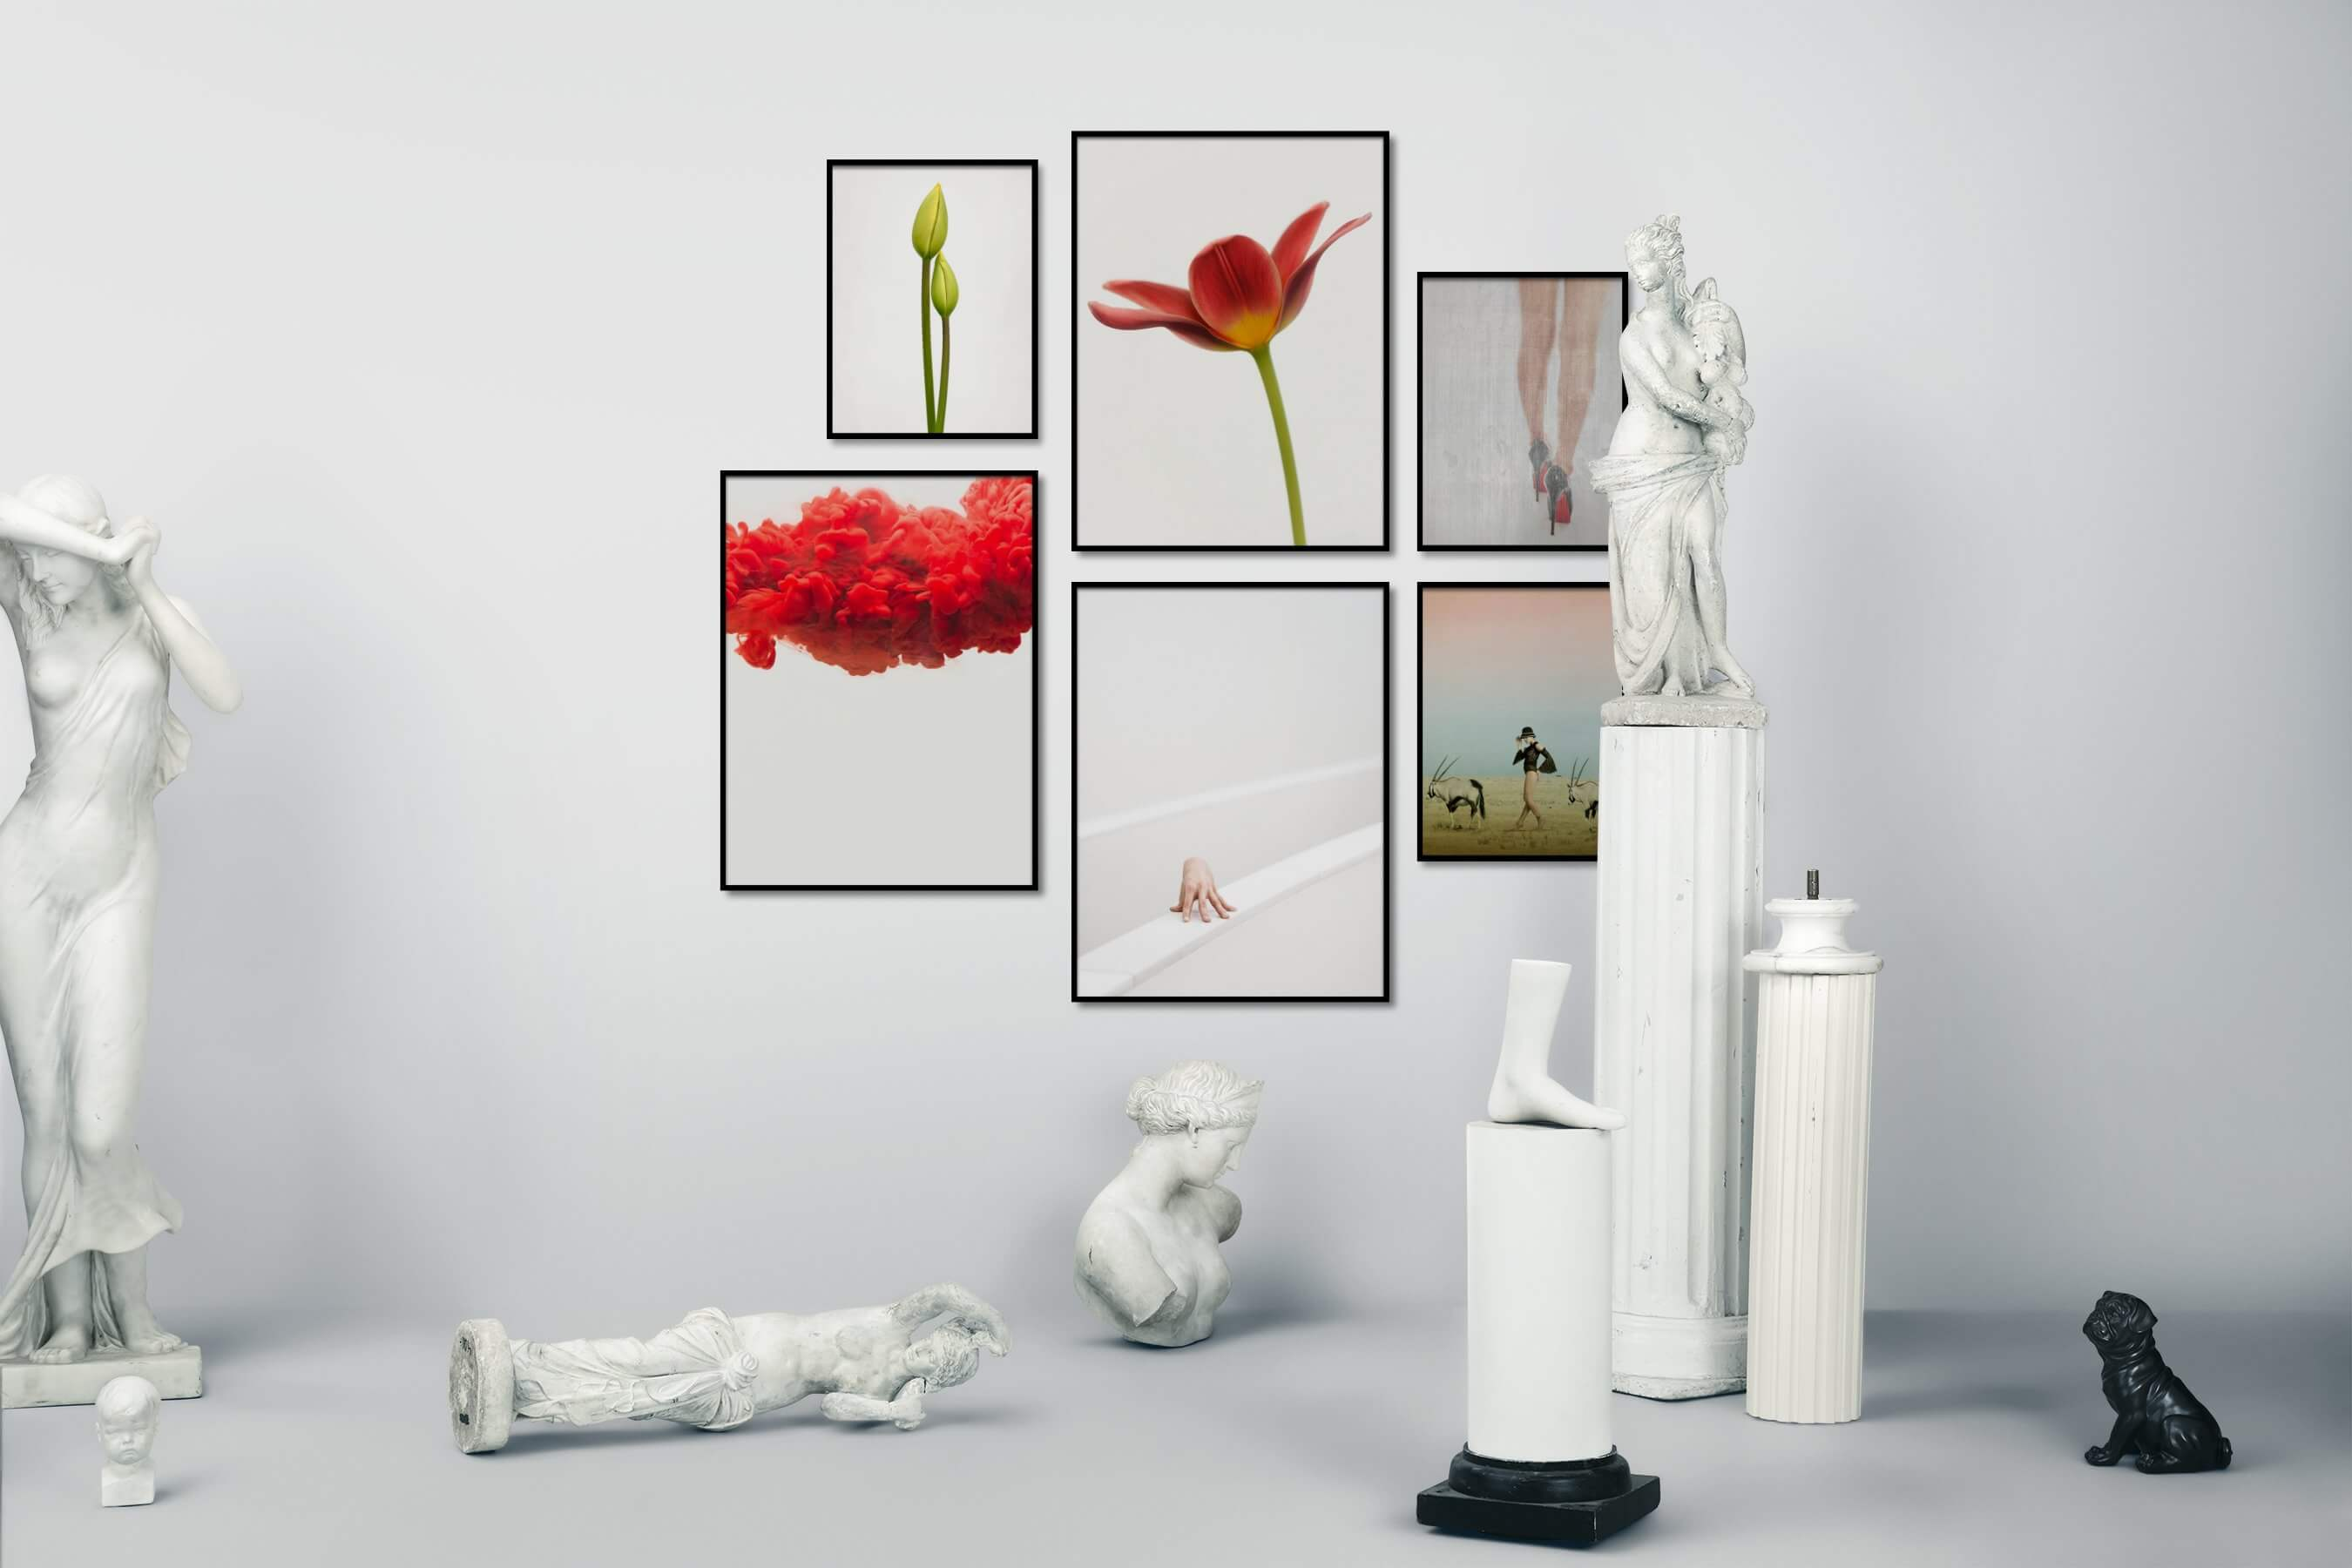 Gallery wall idea with six framed pictures arranged on a wall depicting Bright Tones, For the Minimalist, Flowers & Plants, Mindfulness, Vintage, Fashion & Beauty, For the Moderate, and Animals